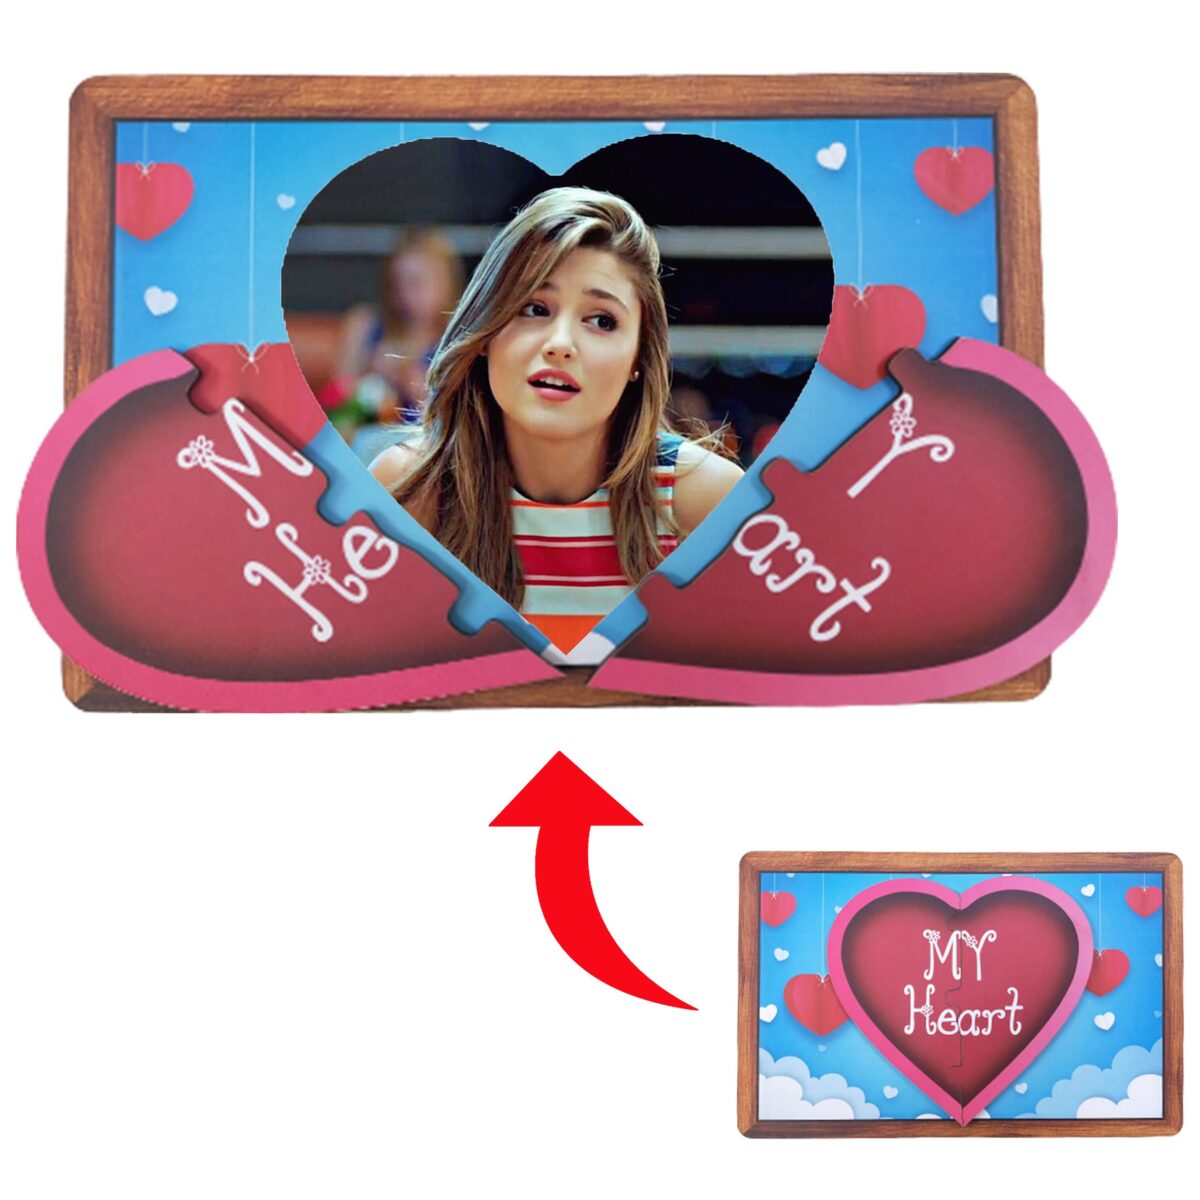 My Heart Designed Personalized Photo Printed Wooden Magnetic Photo Frame